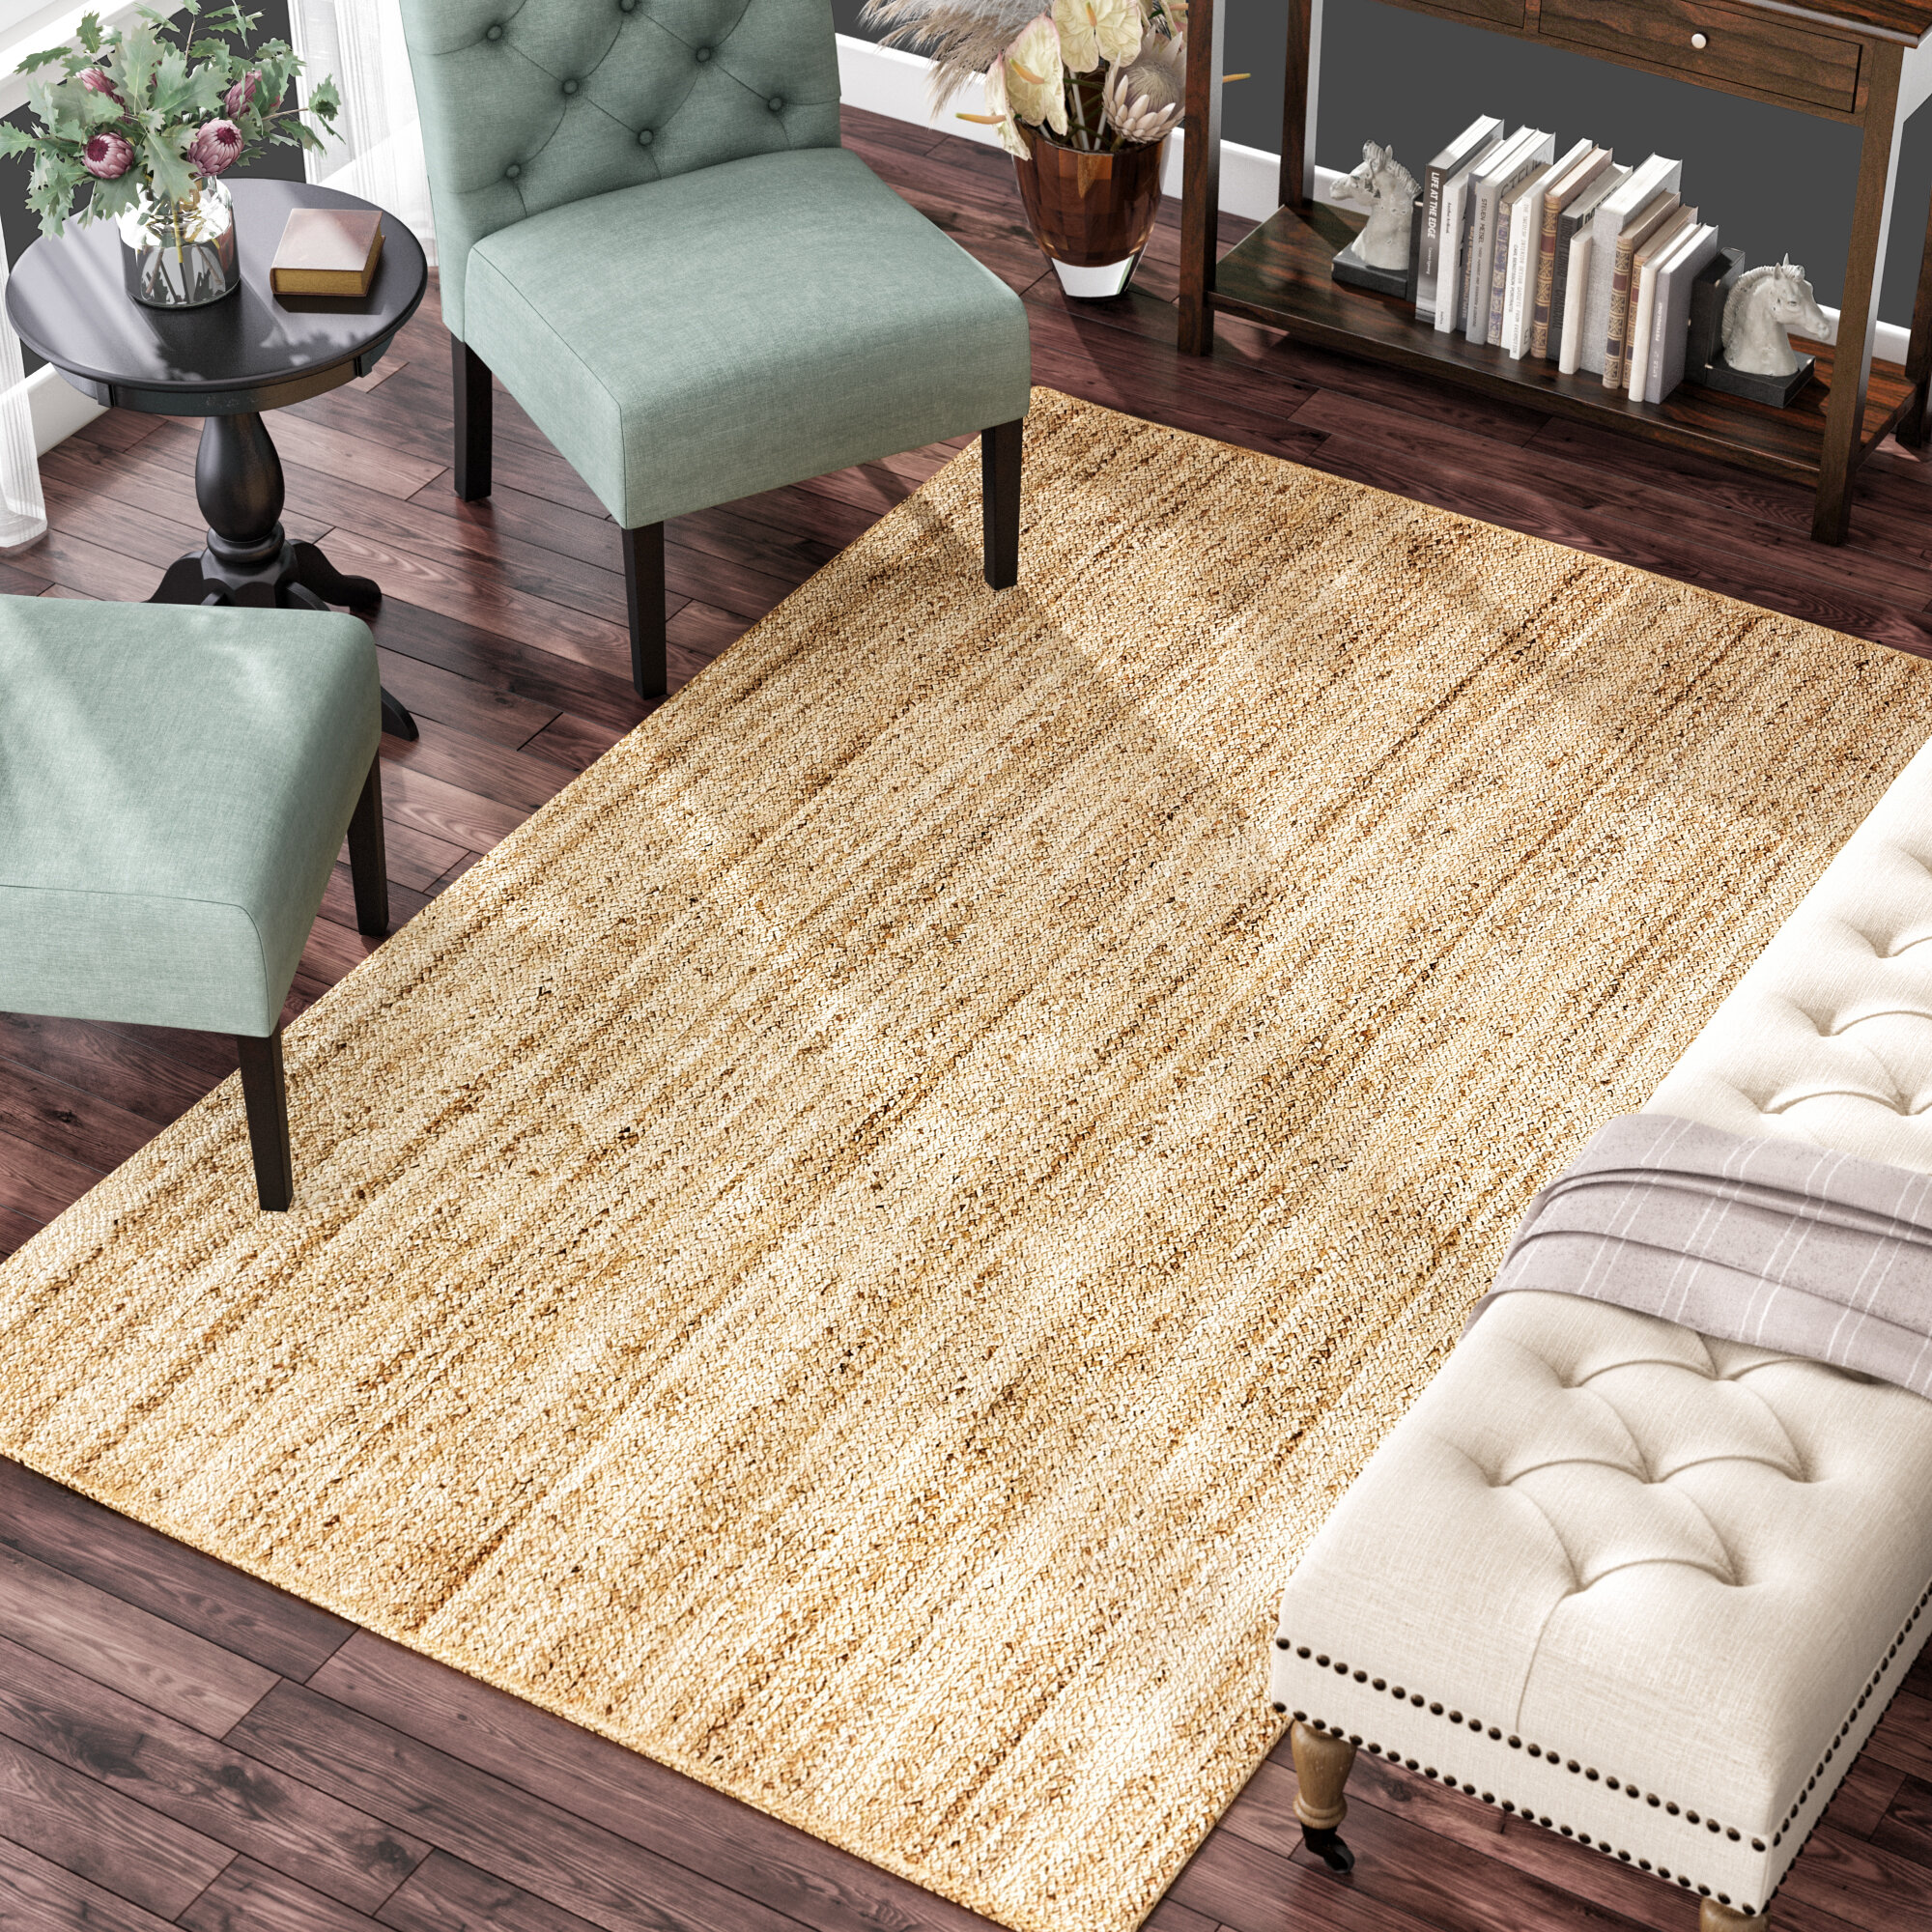 Bay Isle Home Shreya Handmade Braided Jute Sisal Beige Area Rug Reviews Wayfair